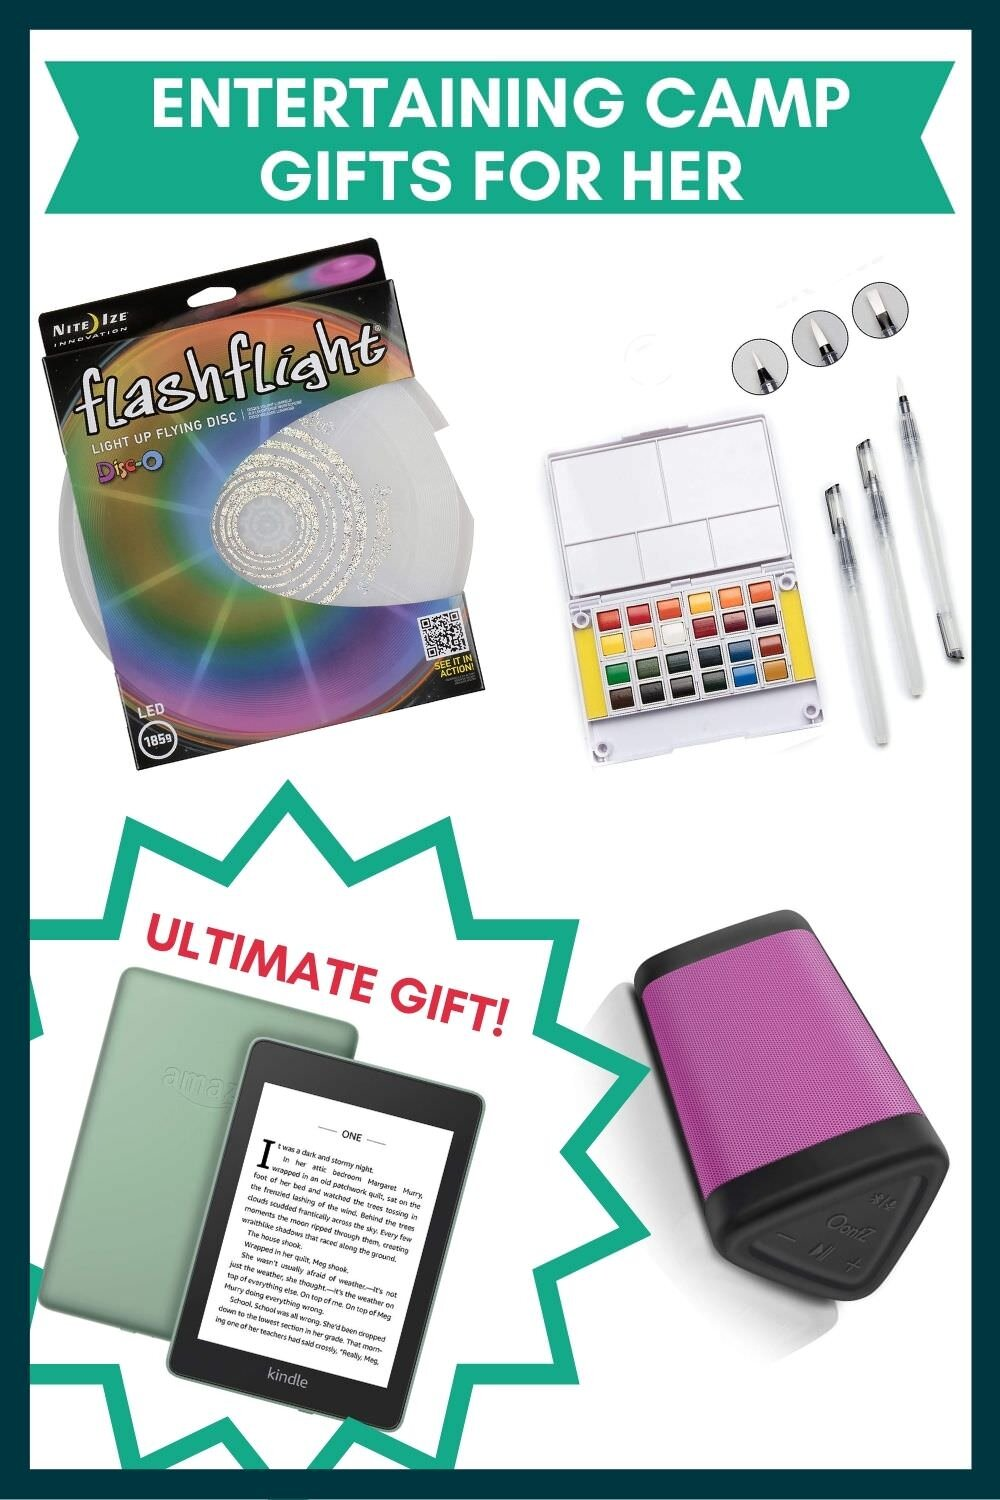 Entertaining camping gift ideas for her.